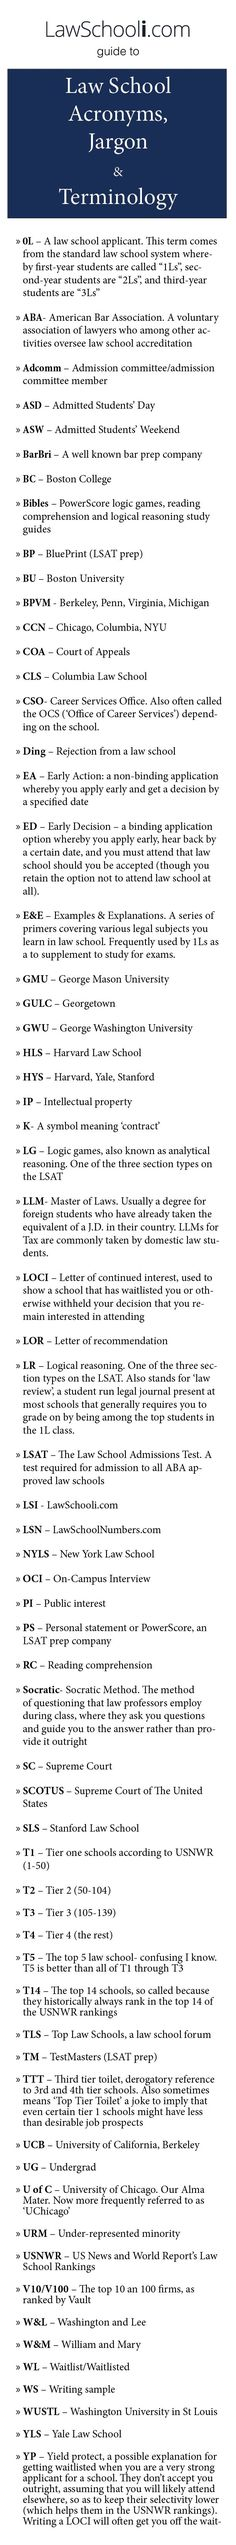 law school personal statement format Collegee livin! Pinterest - law school personal statement